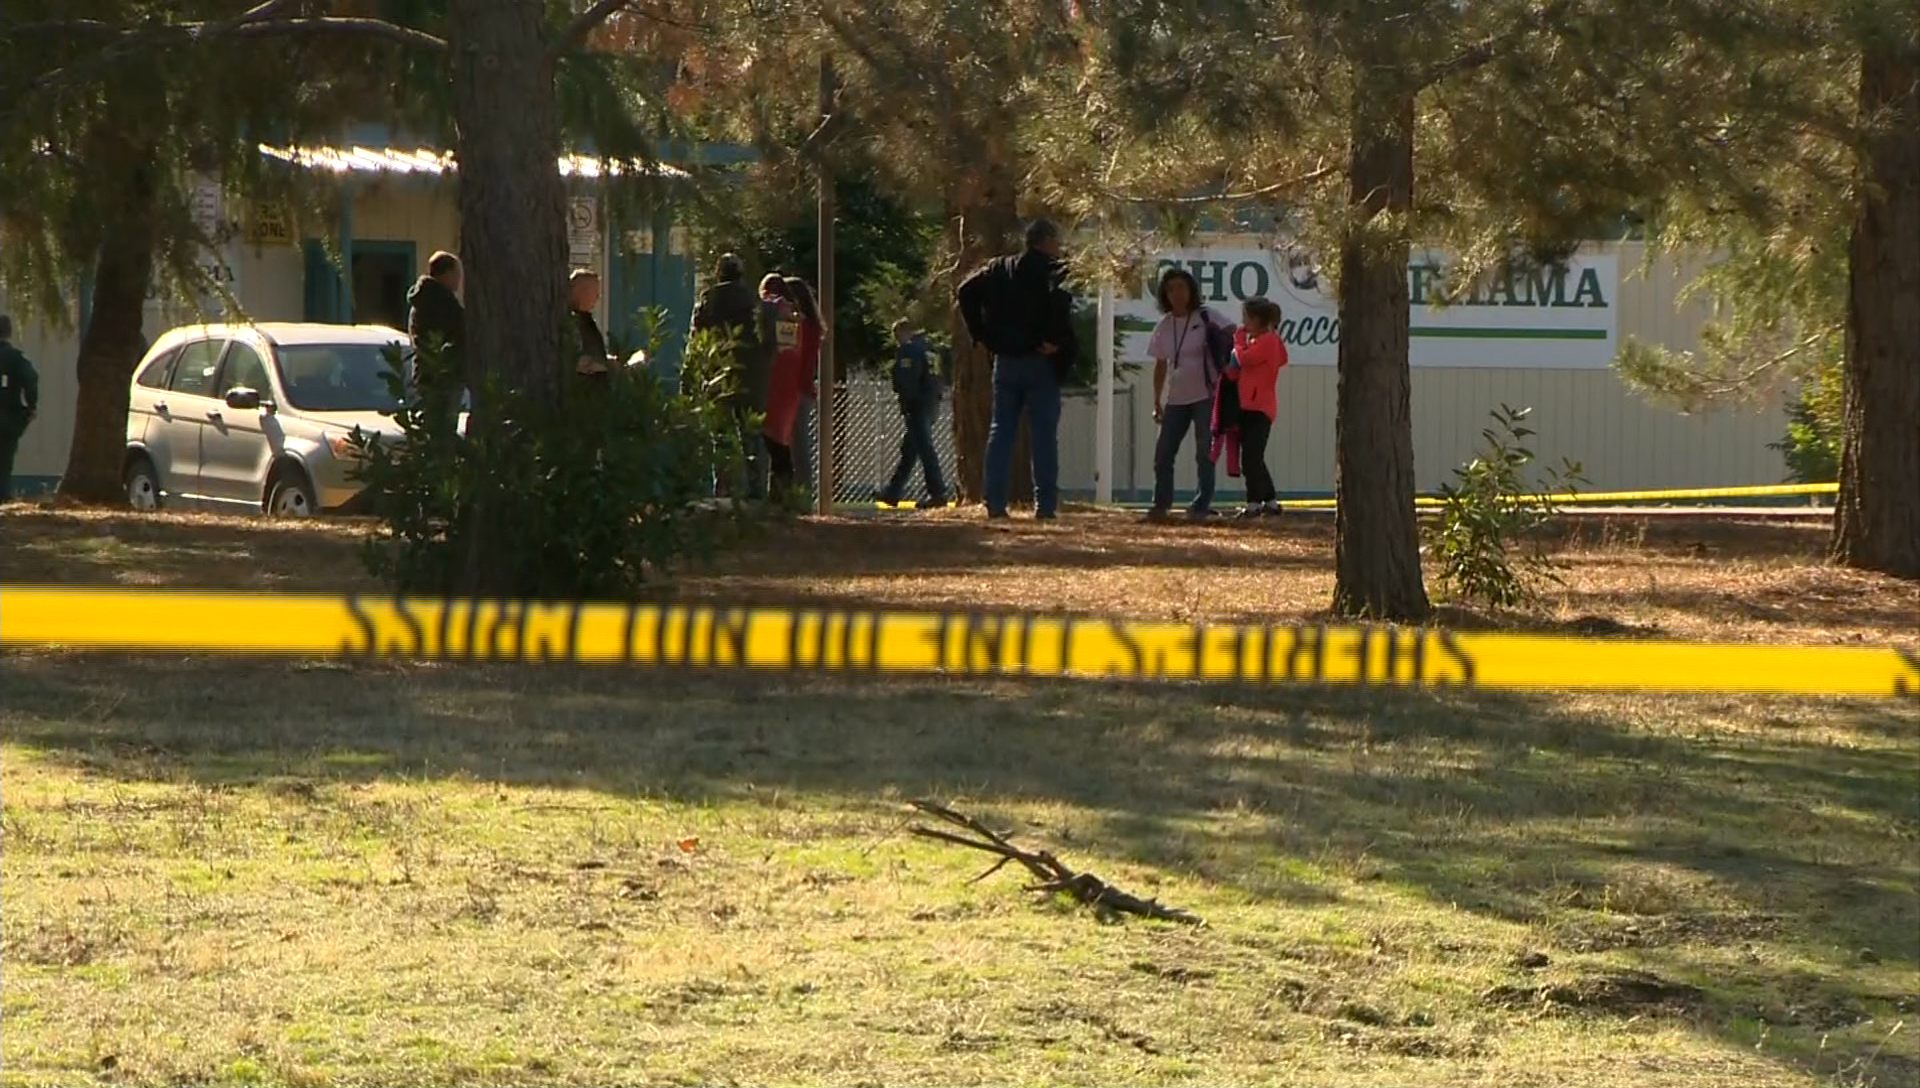 Northern California Shooting Leaves 5 Dead, Including Attacker